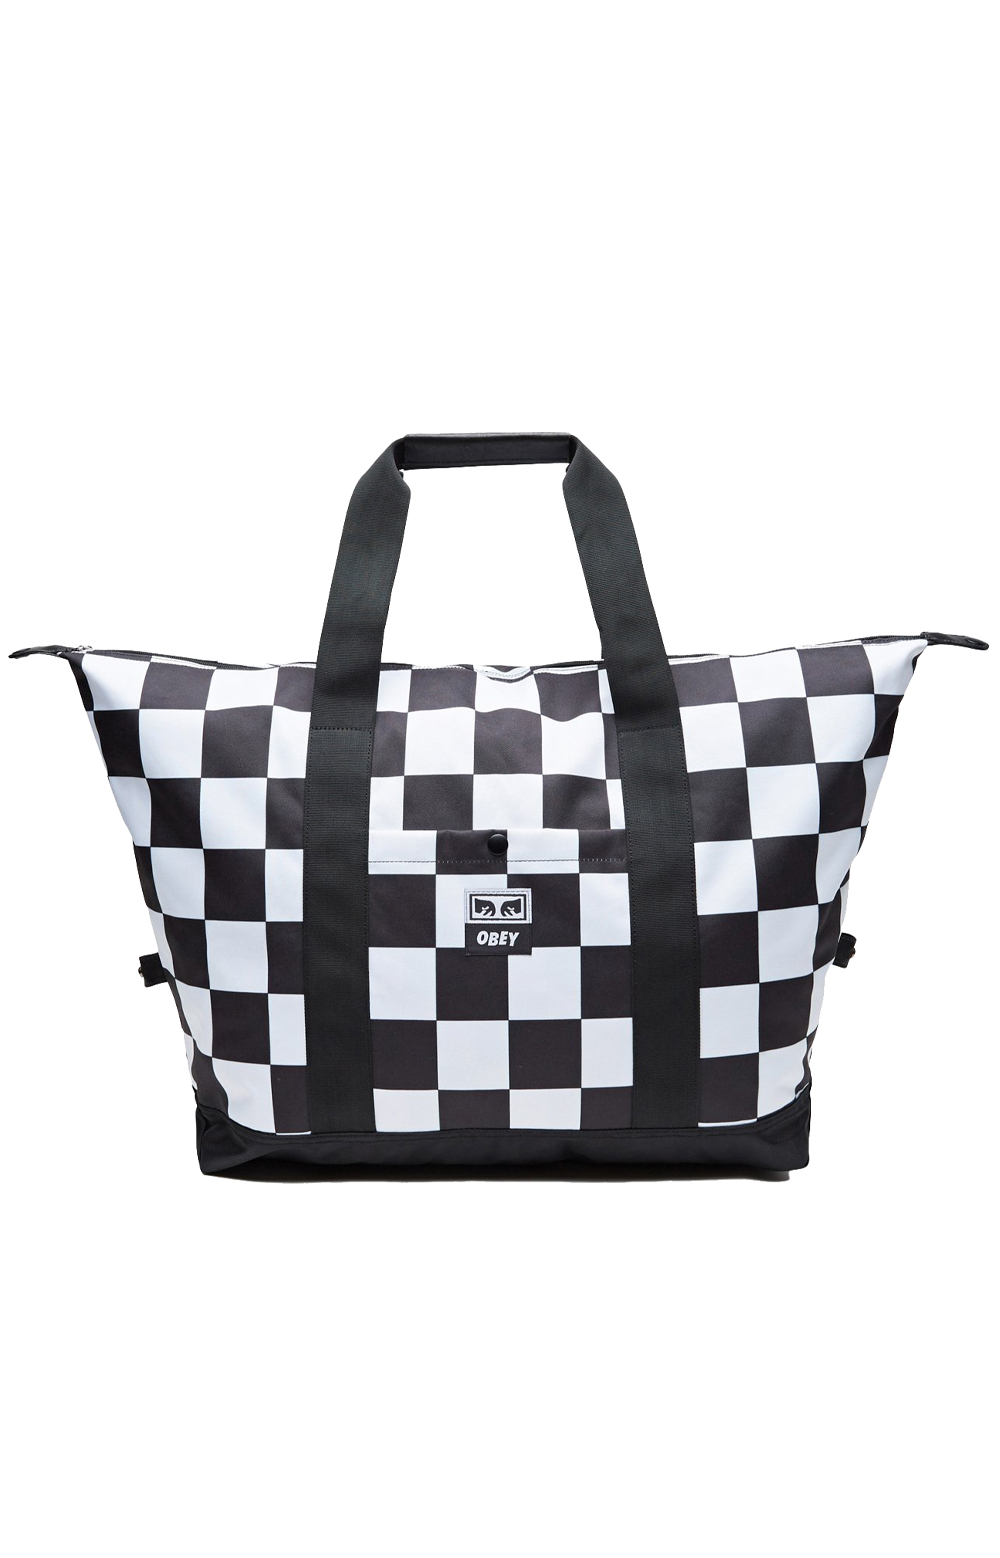 OBEY, Drop Out Weekender Duffle Bag - Checker